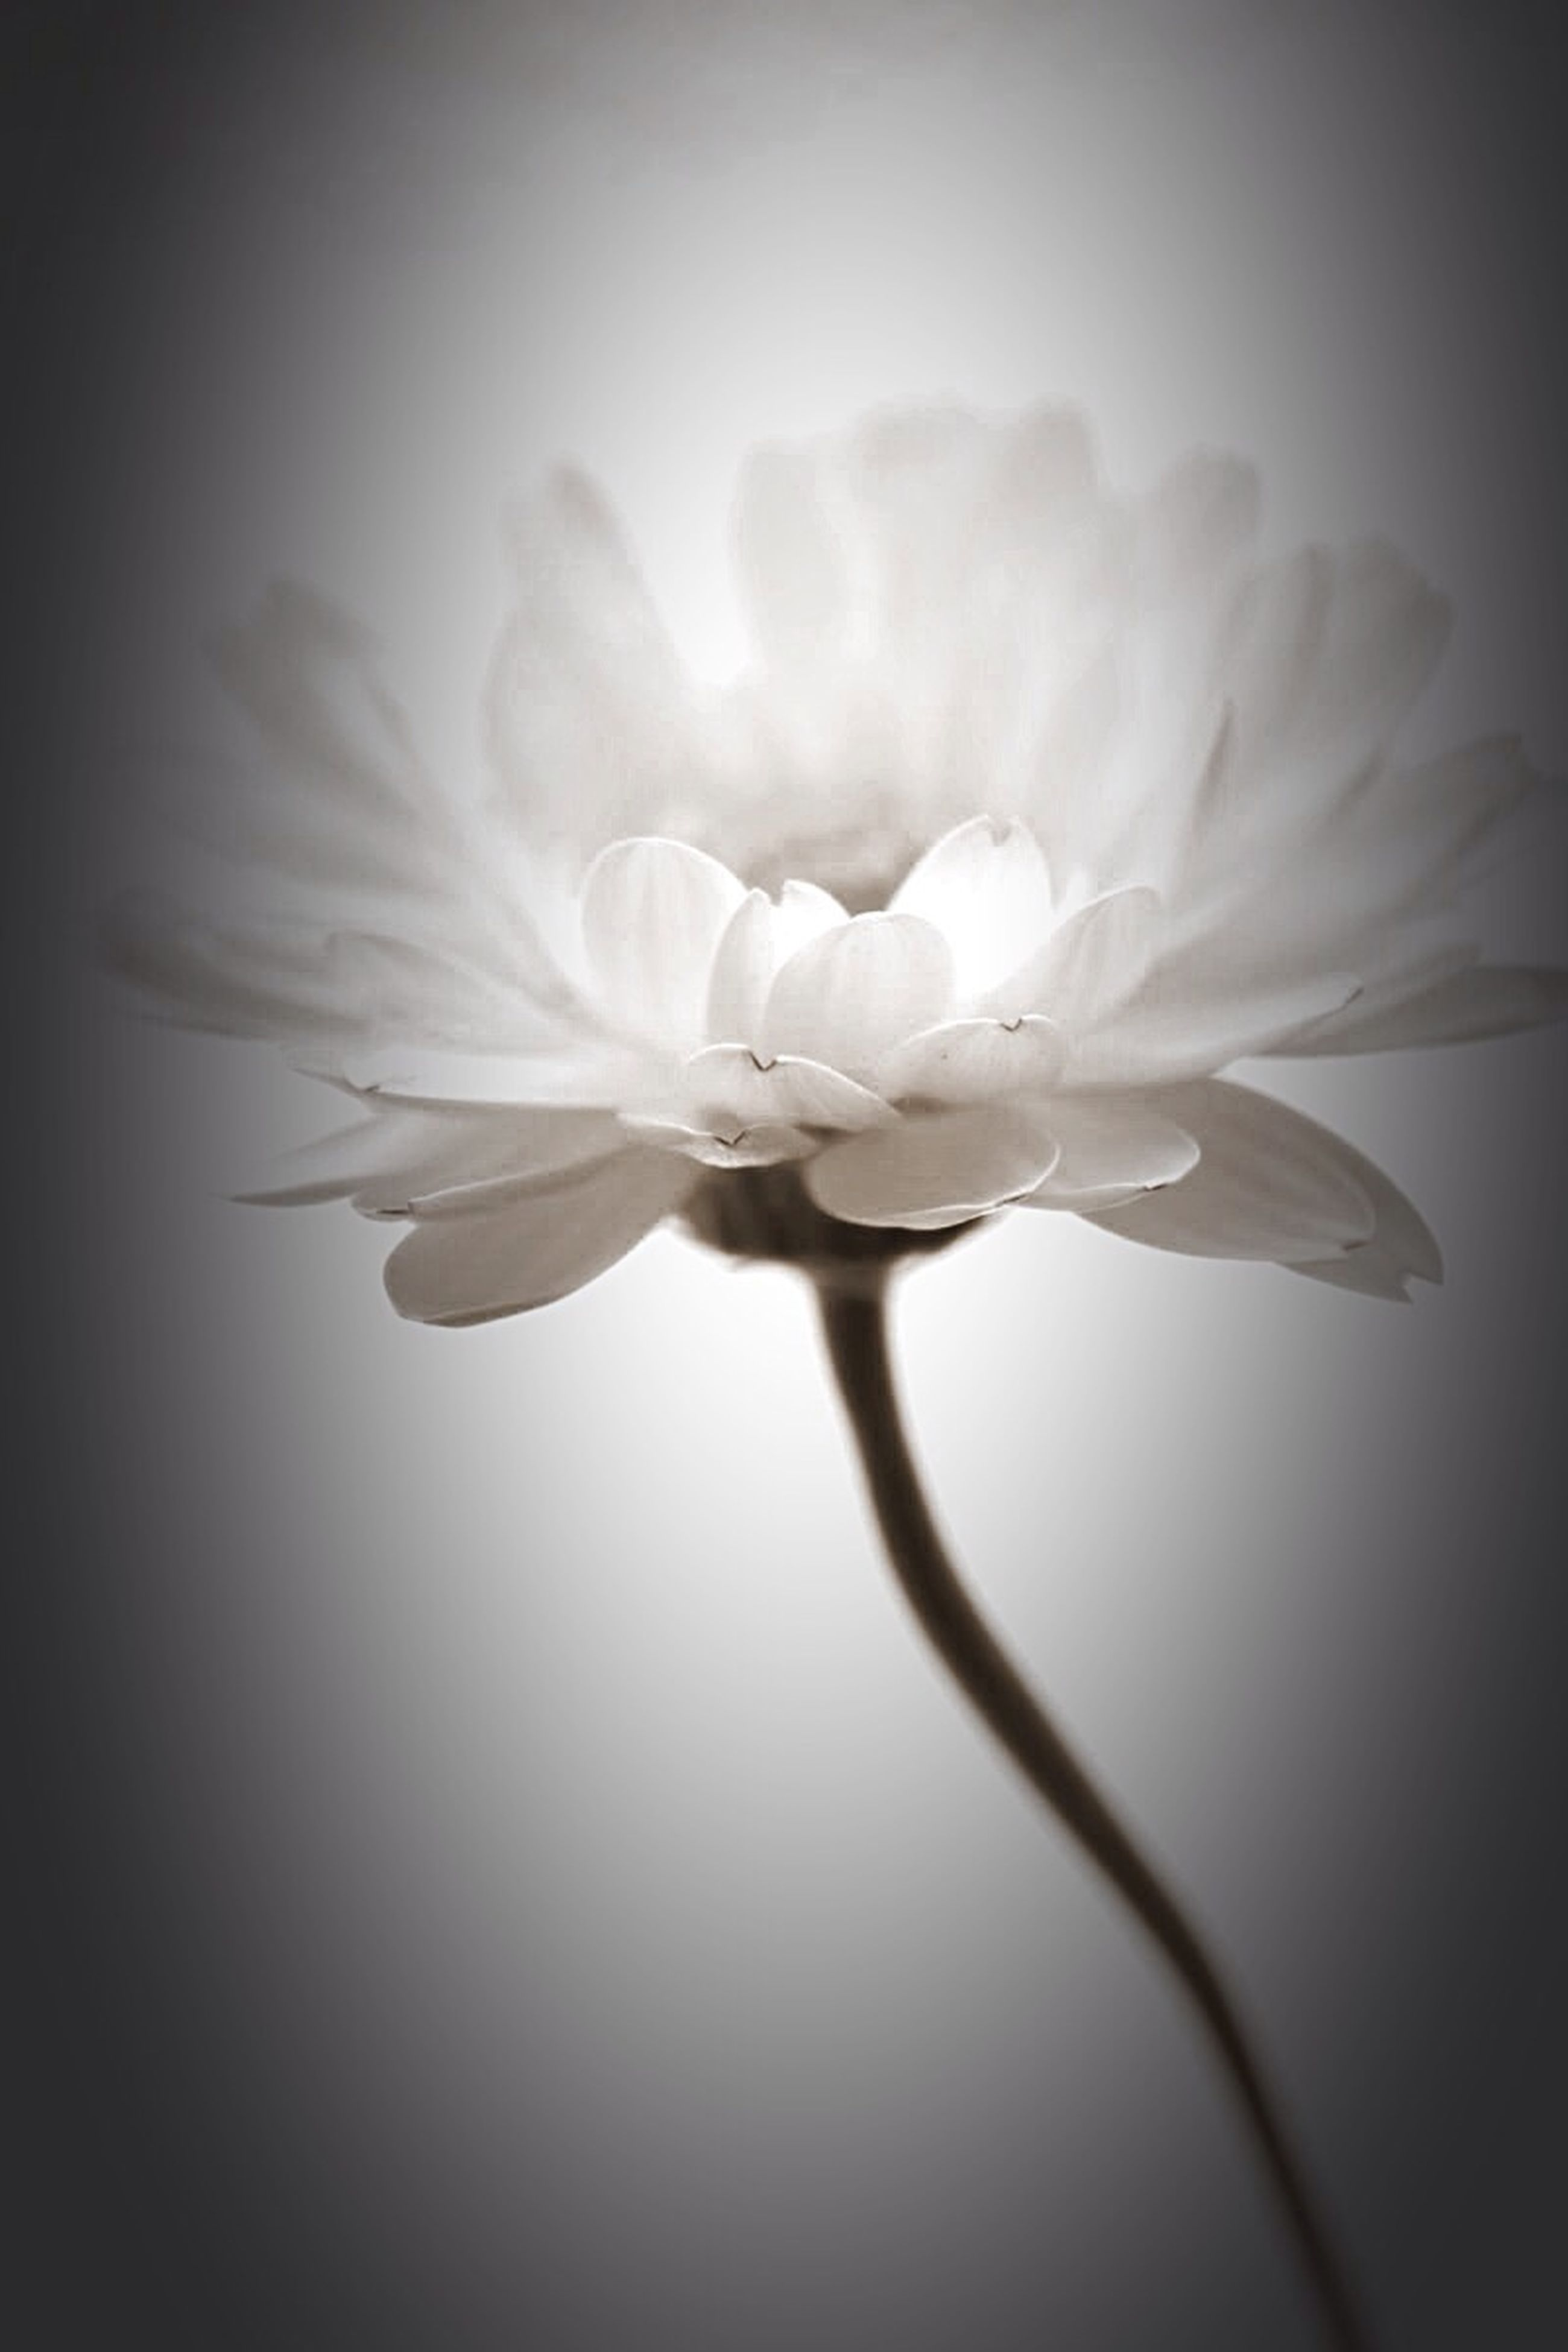 flower, petal, freshness, fragility, flower head, beauty in nature, growth, close-up, single flower, nature, white color, stem, blooming, plant, in bloom, blossom, studio shot, stamen, focus on foreground, no people